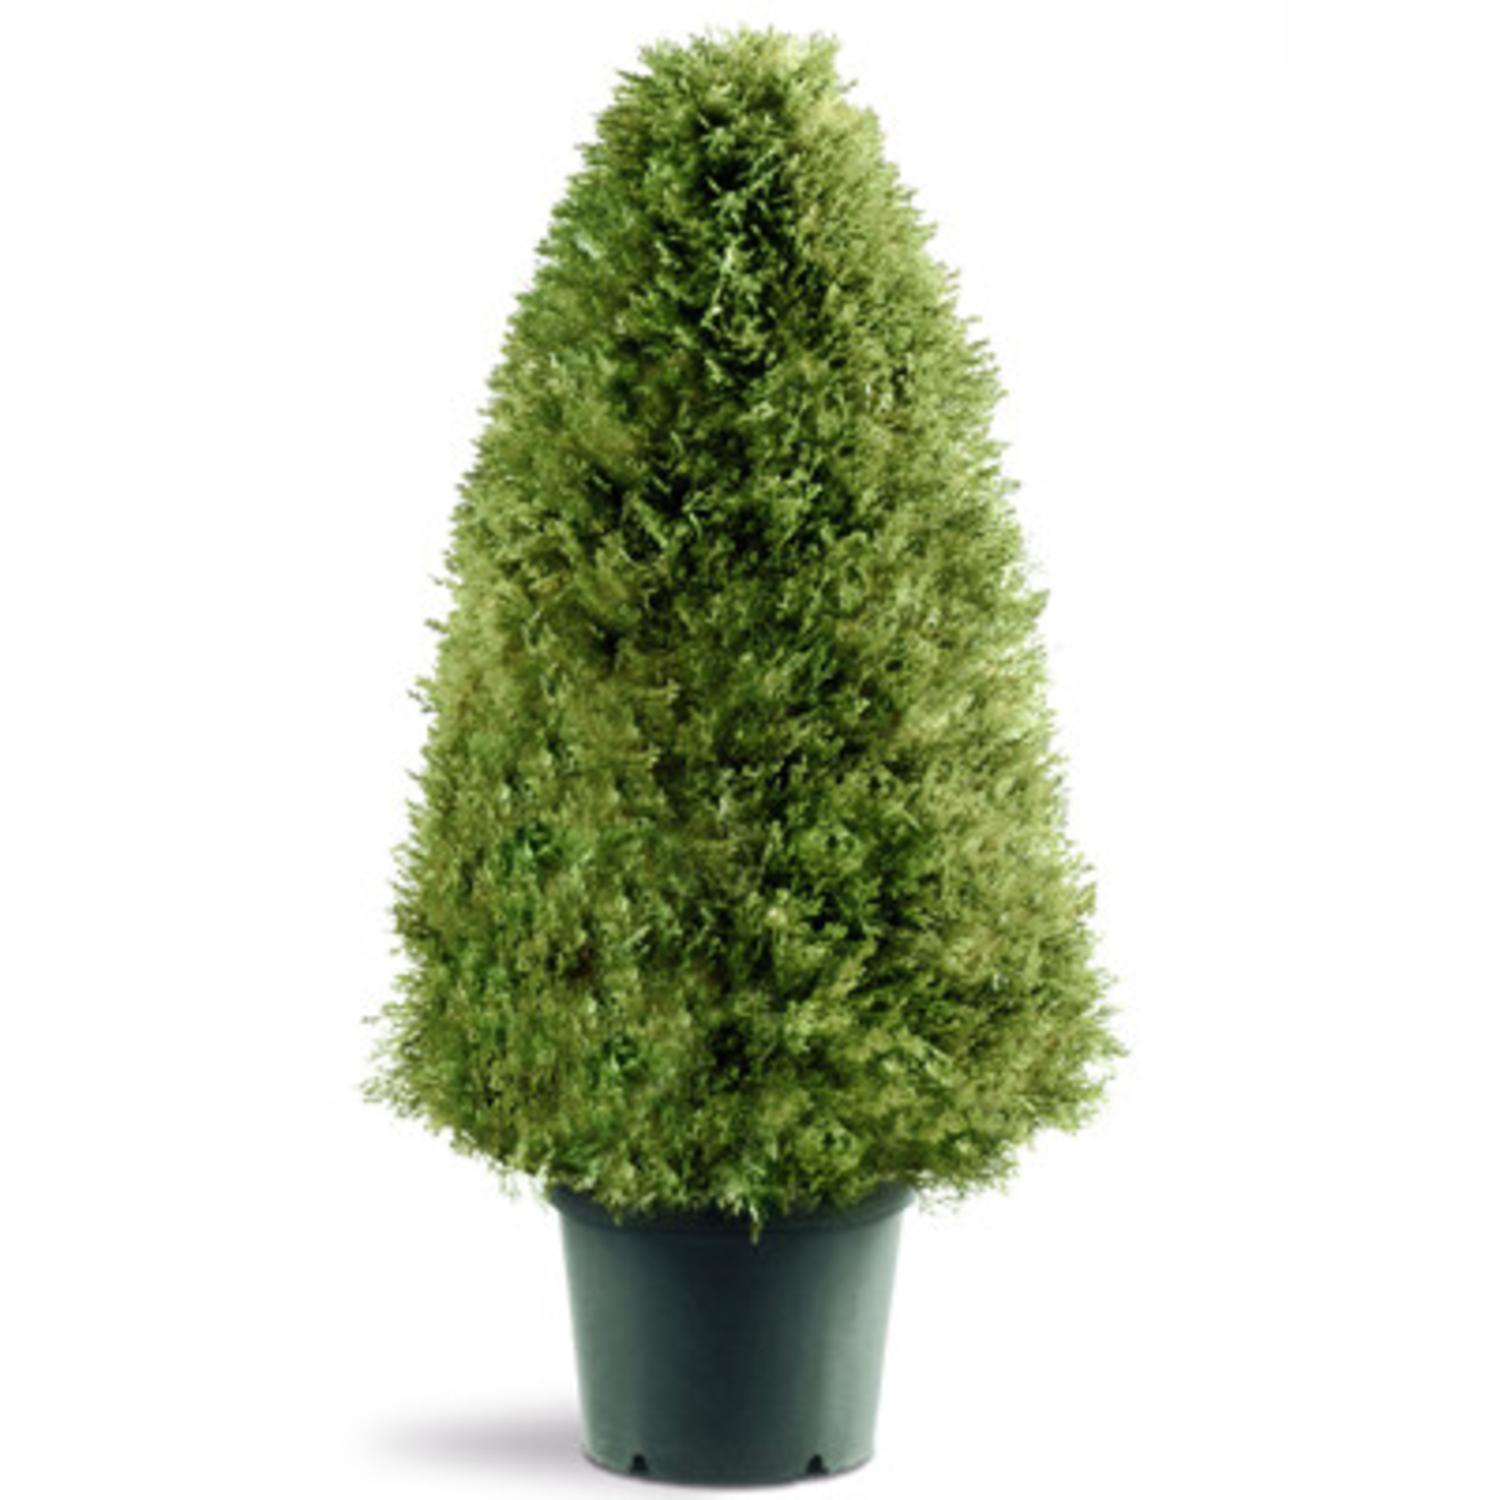 "30"" Potted Artificial Rounded Triangular Juniper Topiary Tree"